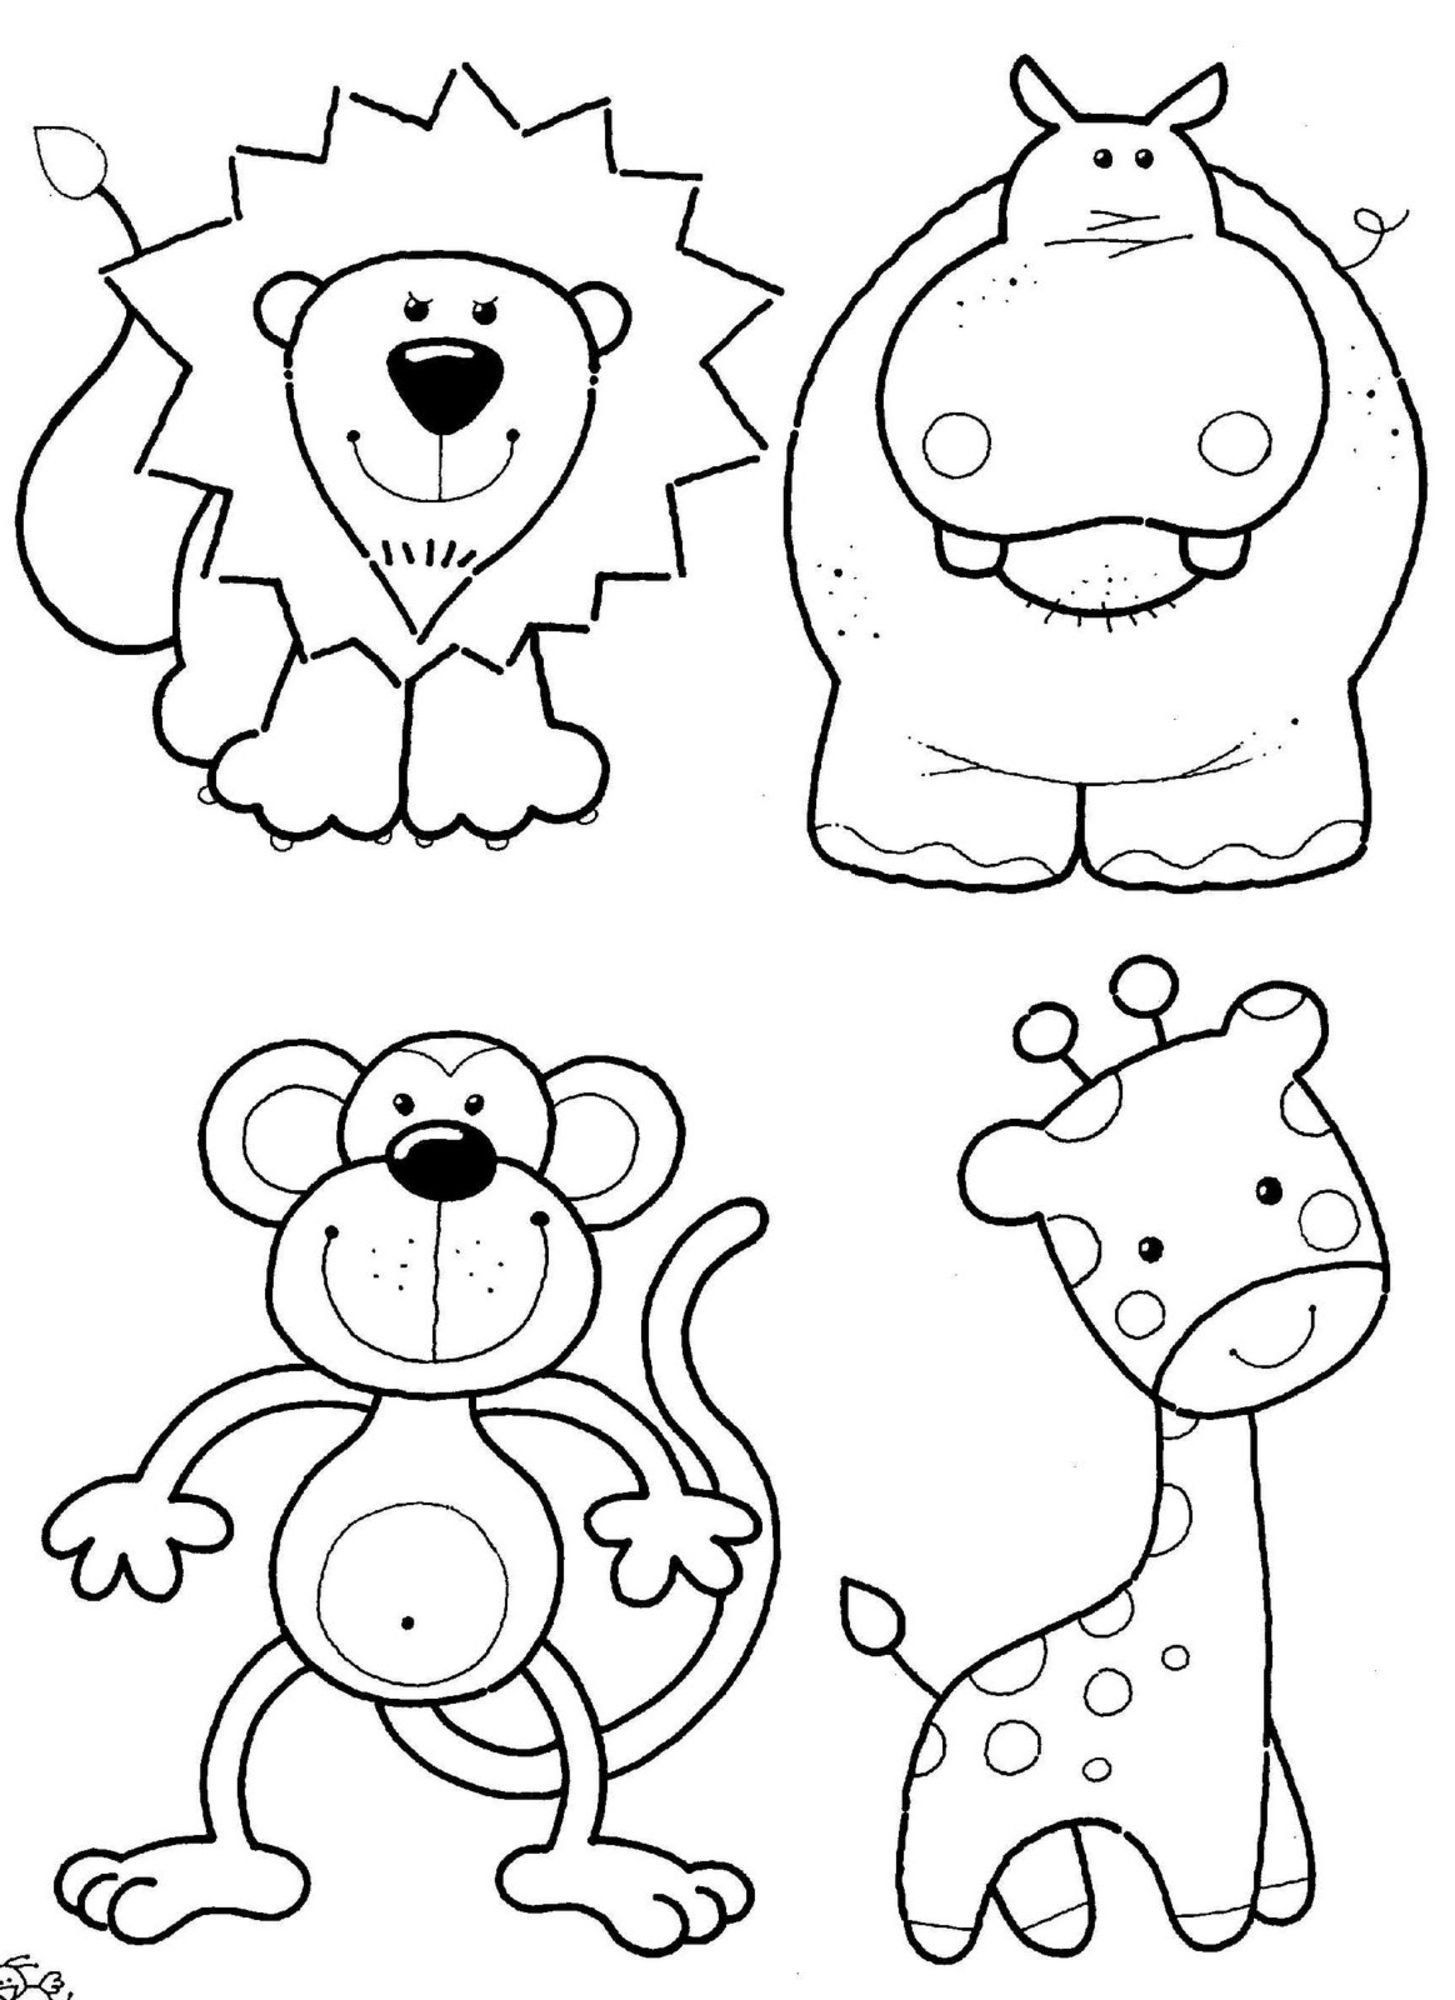 Baby Zoo Animal Coloring Pages Felt Craft Inspiration Animals For Baby Quilt Already Zoo Animal Coloring Pages Zoo Coloring Pages Farm Animal Coloring Pages